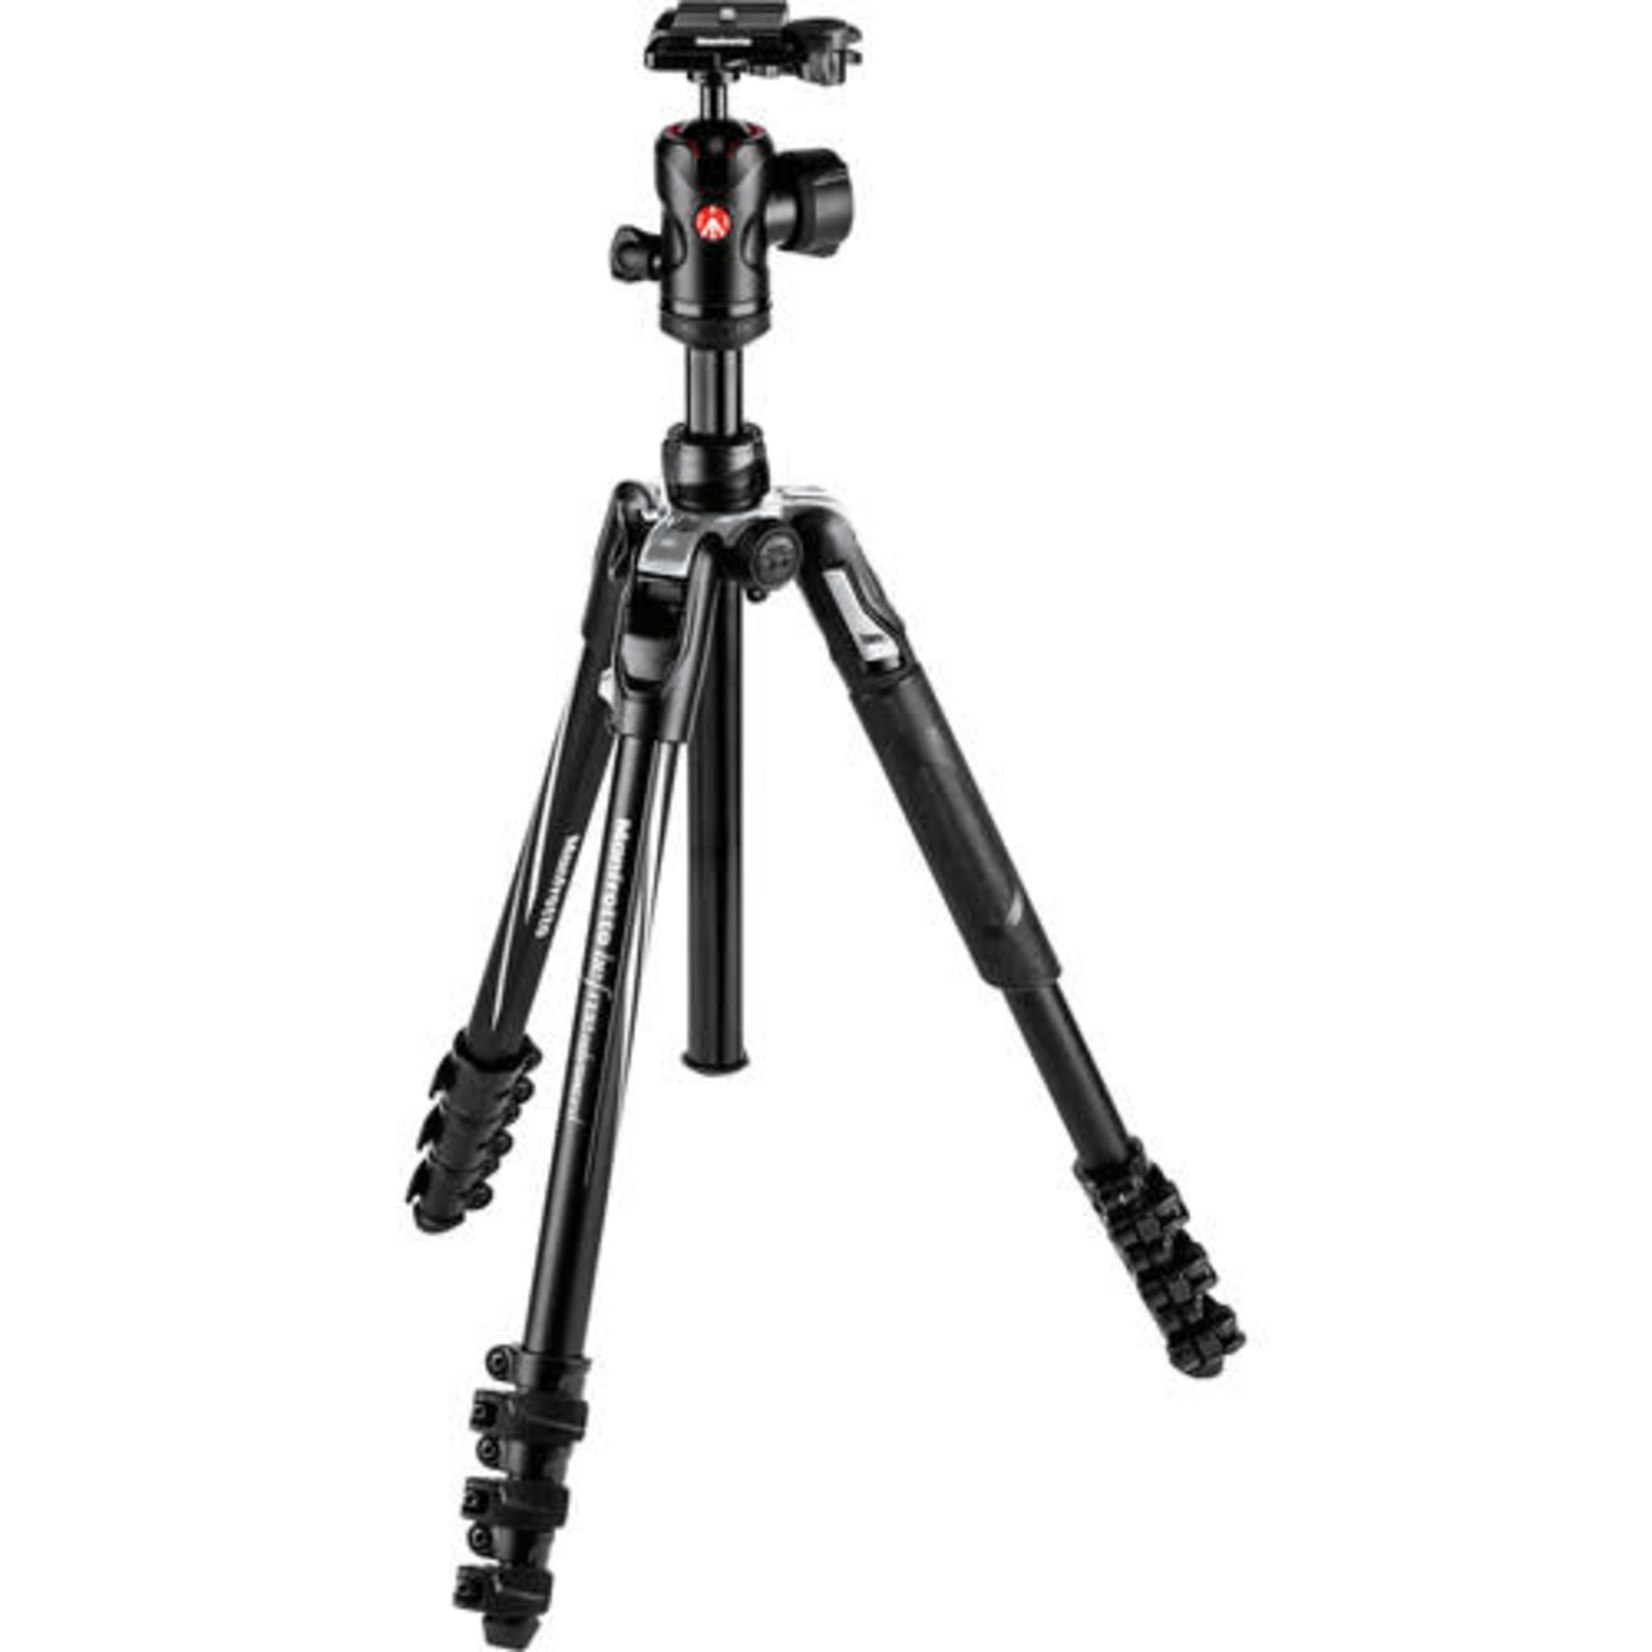 Manfrotto Manfrotto Befree Advanced Travel Aluminum Tripod with 494 Ball Head (Lever Locks, Black)